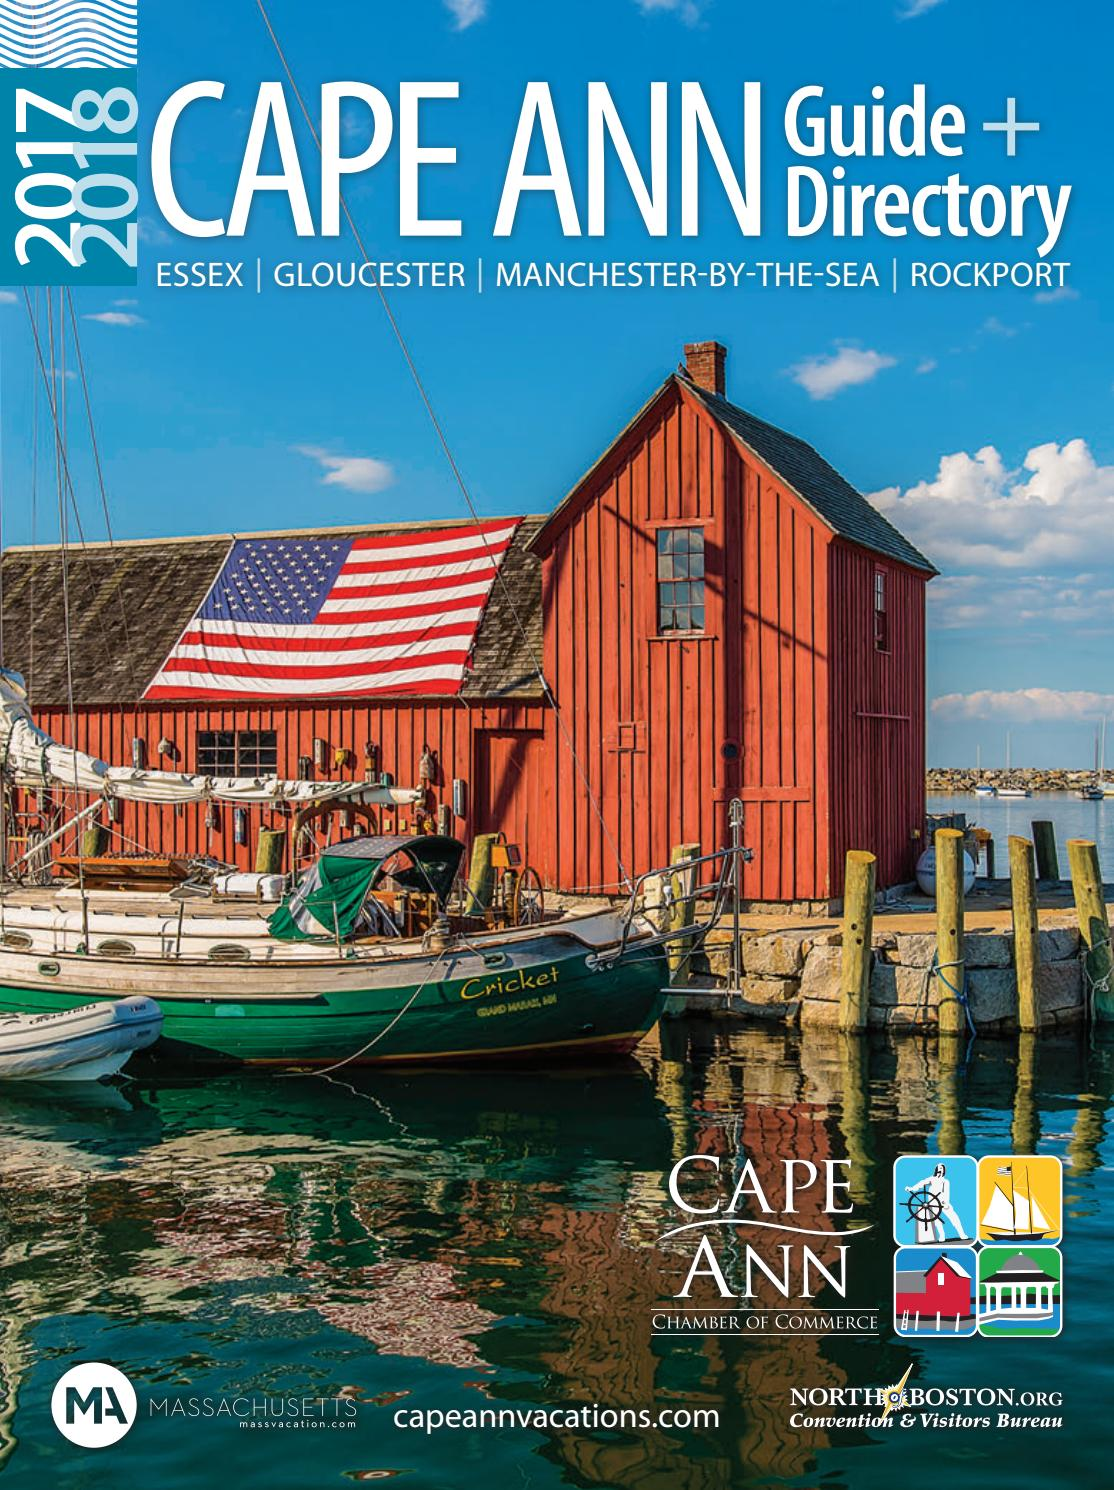 Cape Ann Guide Directory 2017 2018 By